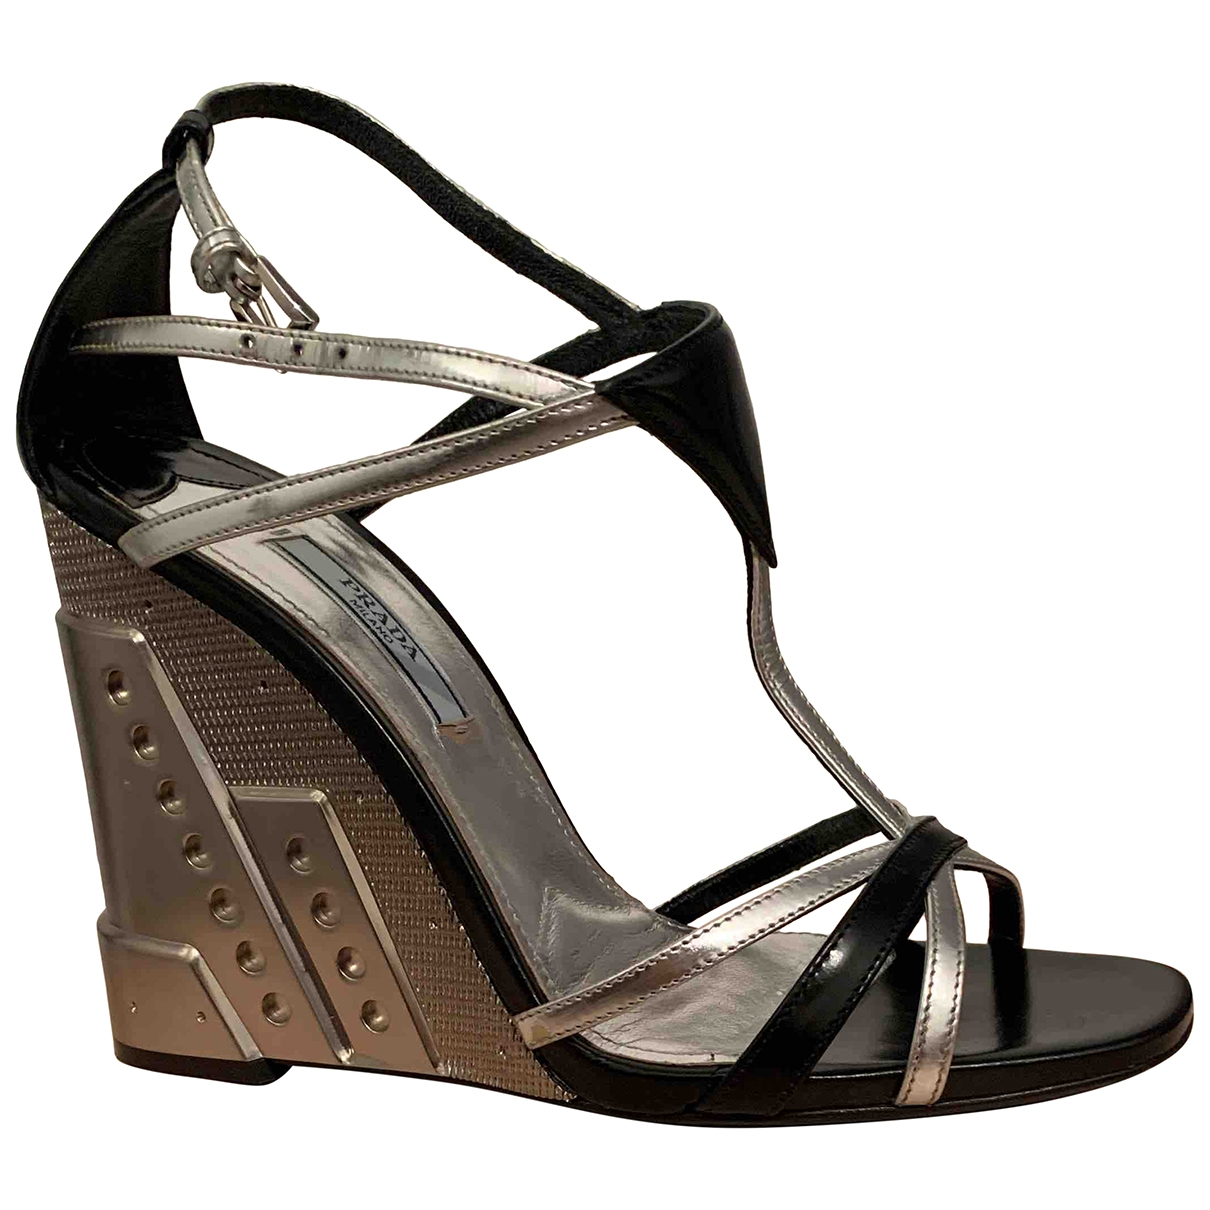 Prada \N Metallic Leather Sandals for Women 37 EU